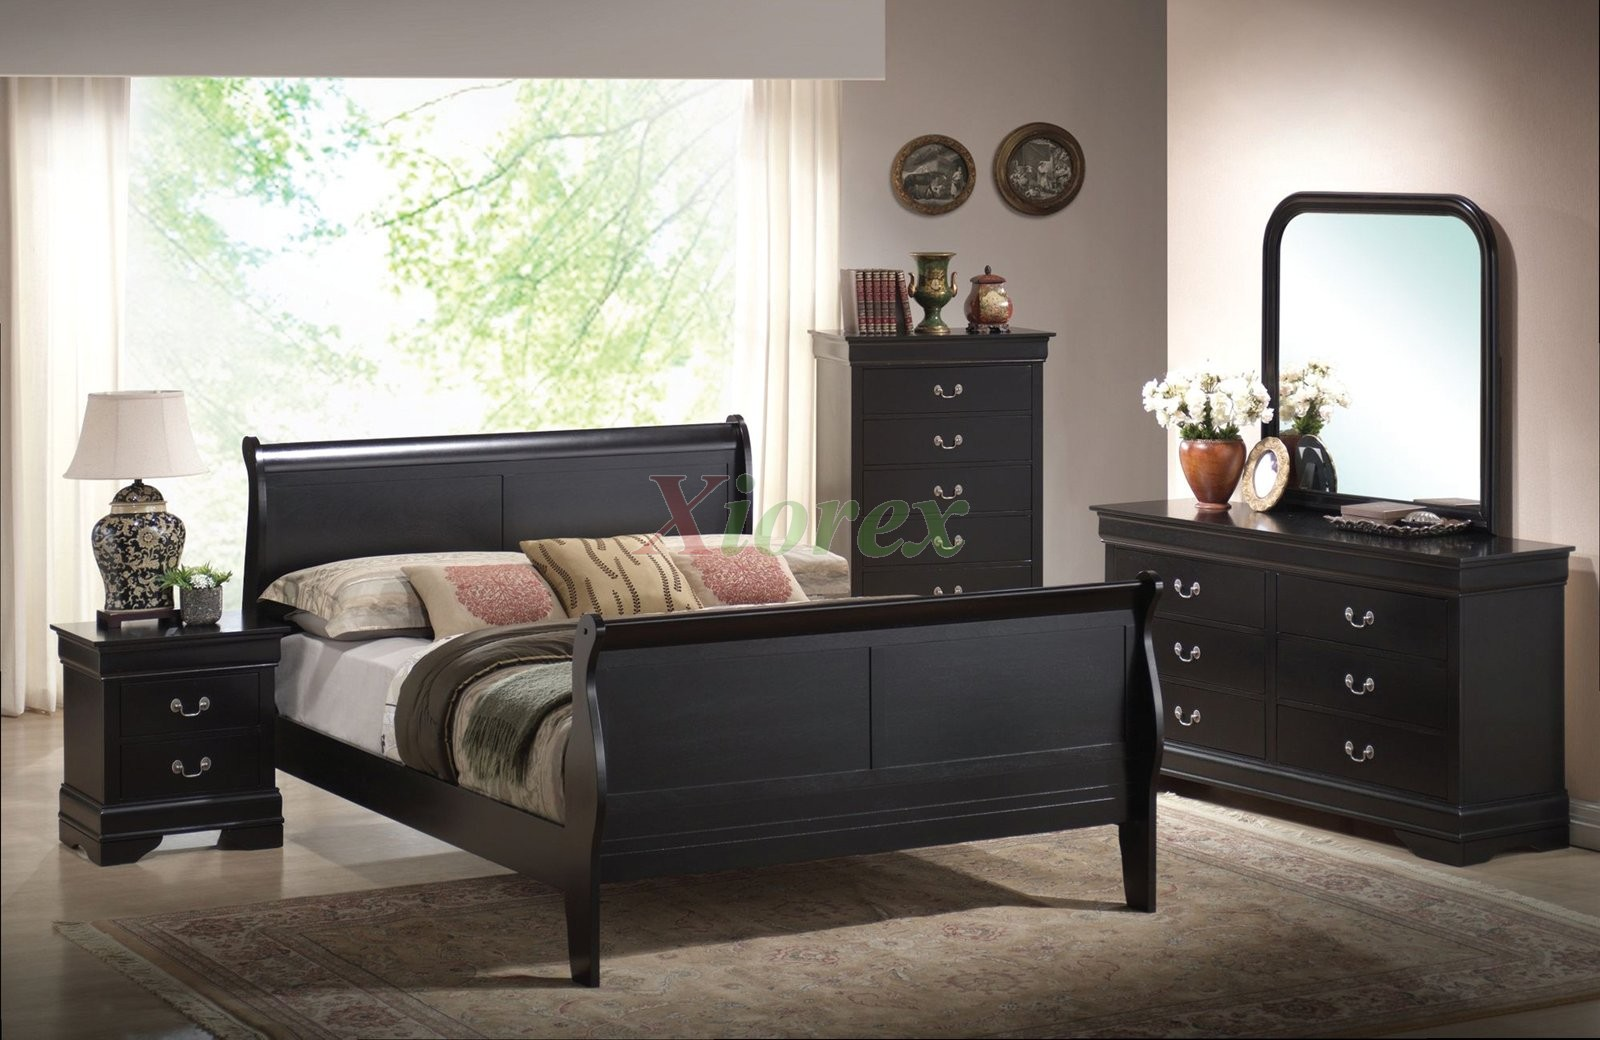 Semi Gloss Sleigh Like Bedroom Furniture Set 170 In Cherry